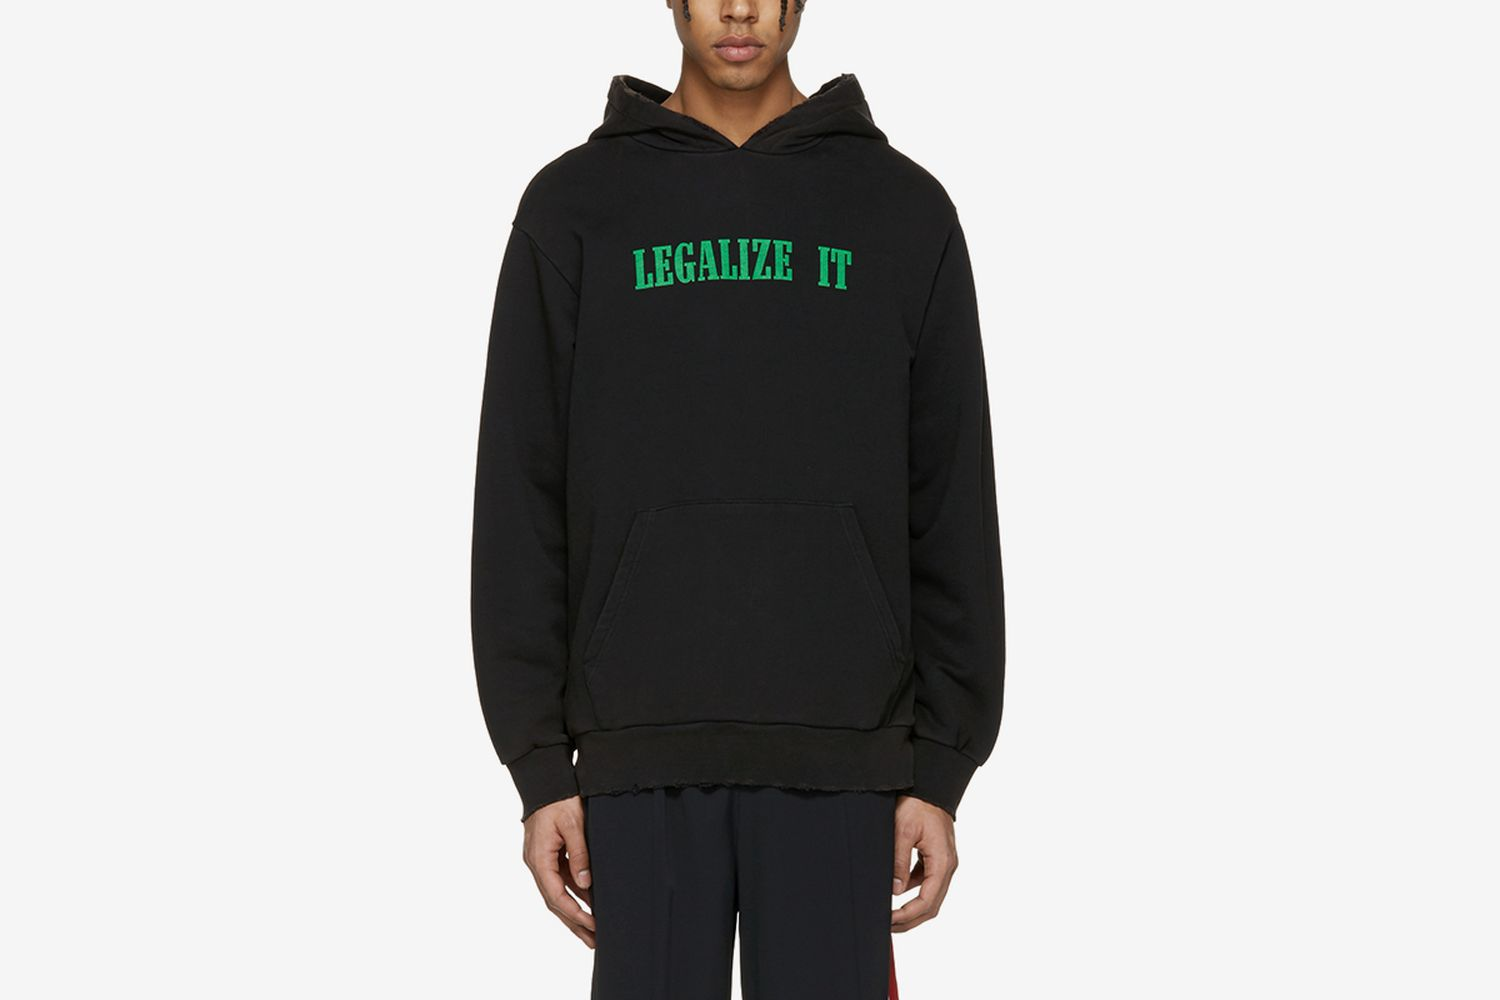 Legalize It Hoodie